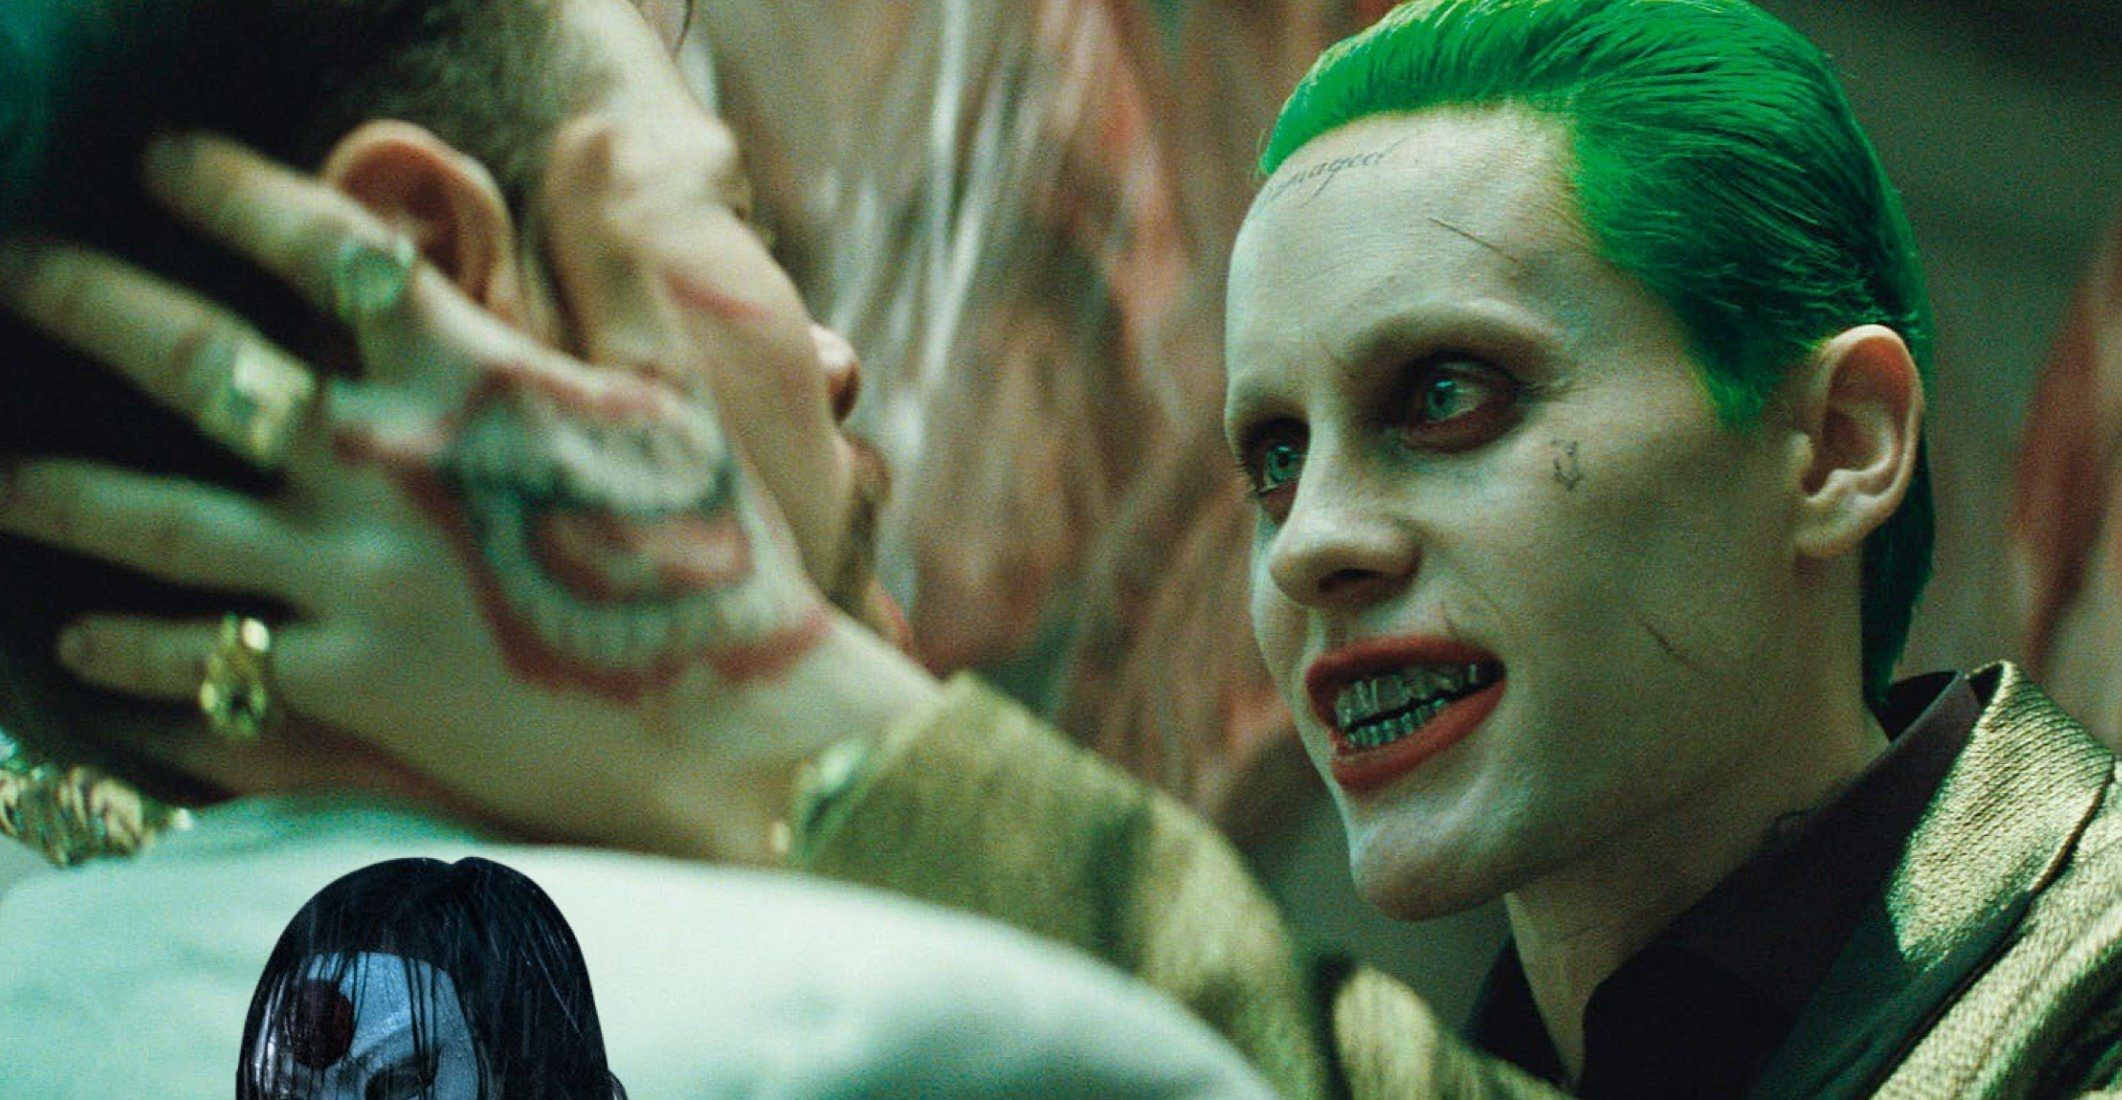 The director of Suicide Squad explains what the Jokers tattoos